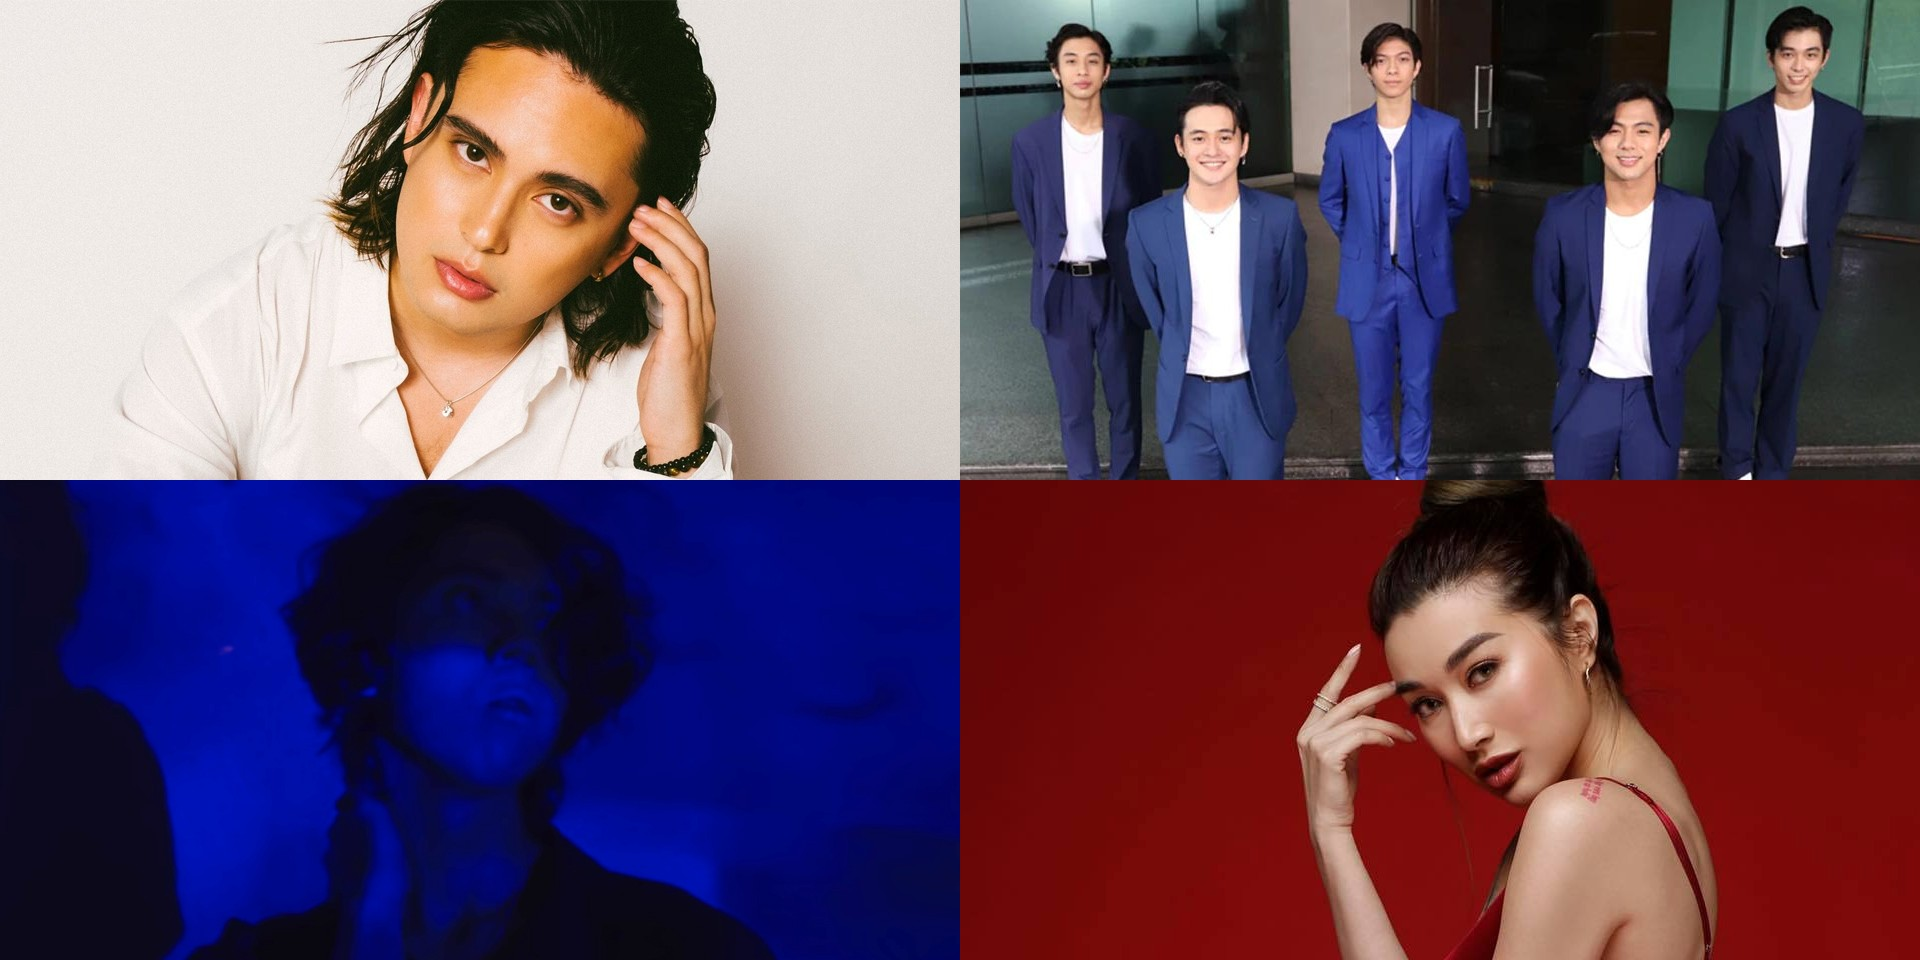 James Reid, BGYO, Fern., Nicole Asensio, and more release new music – listen